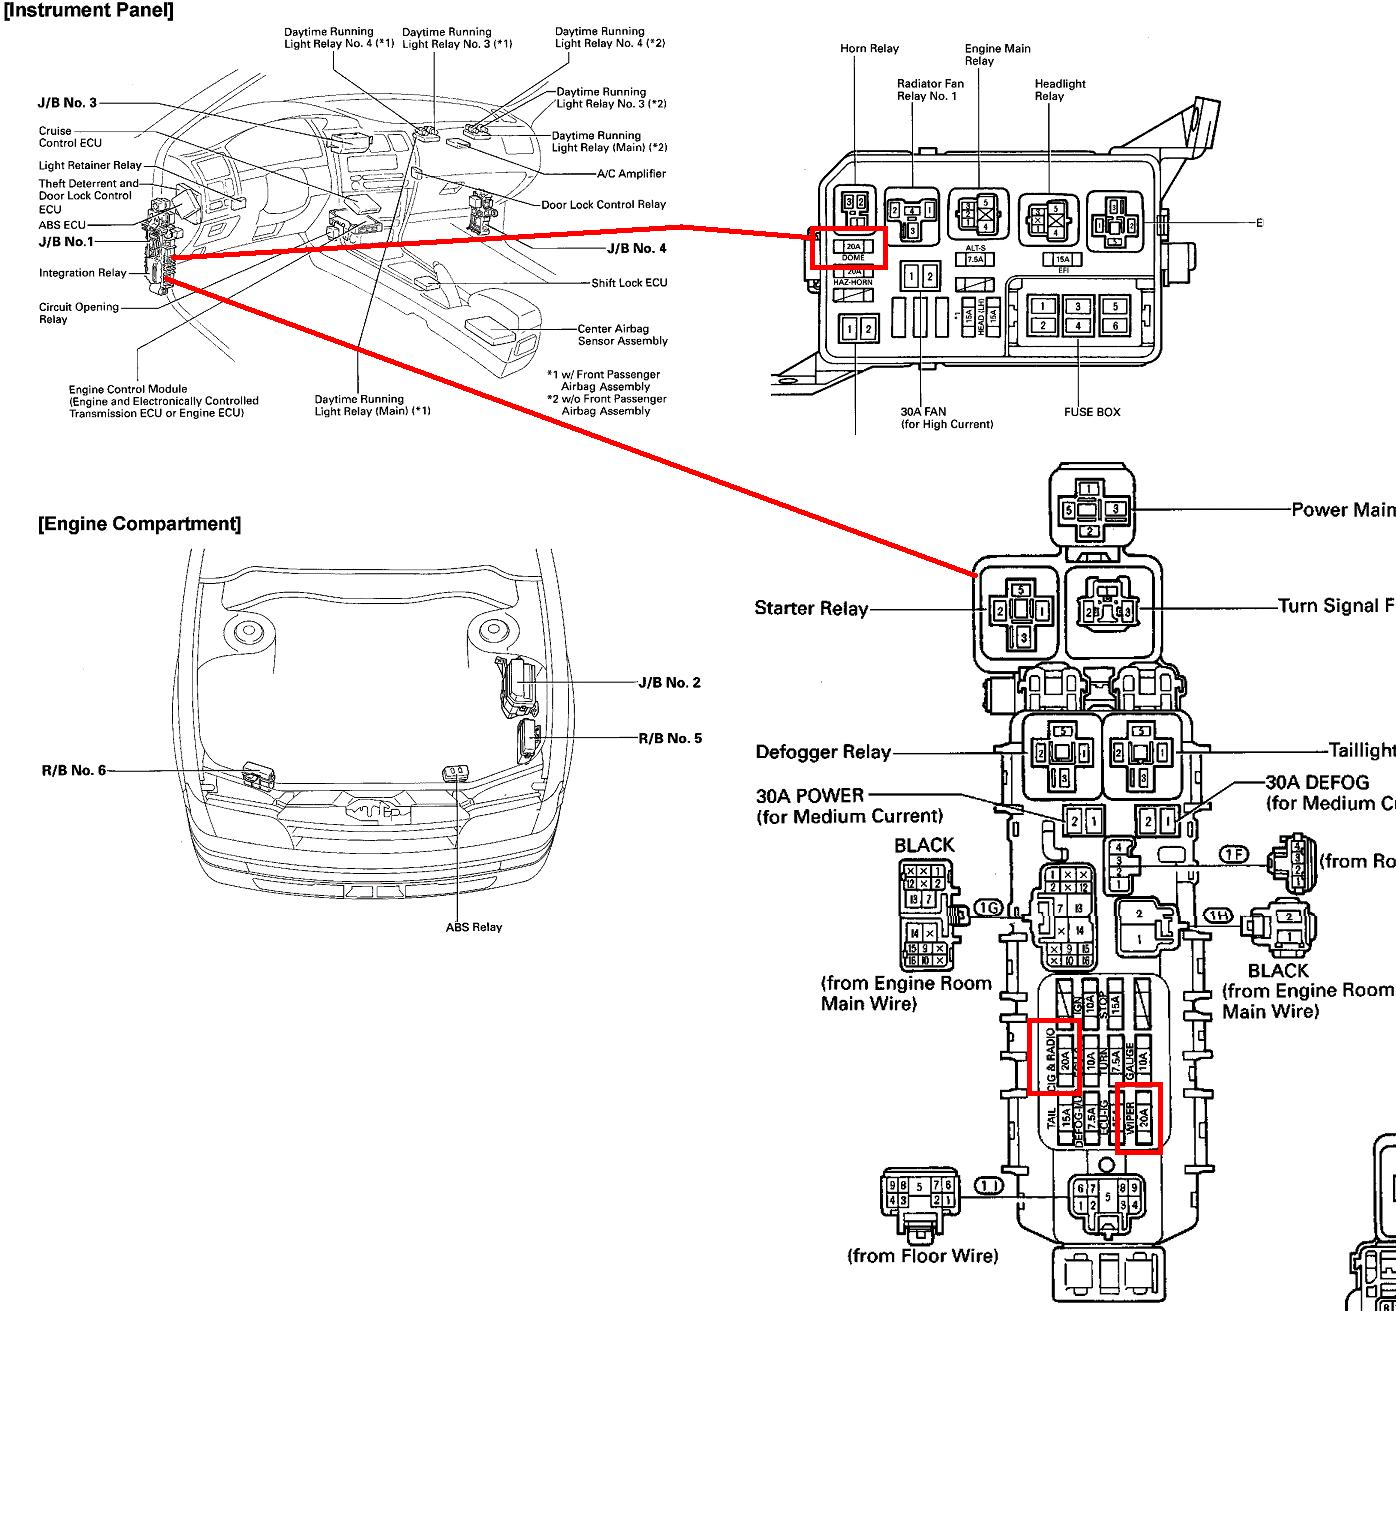 hight resolution of toyota matrix fuse diagram wiring diagram 2009 toyota corolla engine diagram http wwwjustanswercom toyota